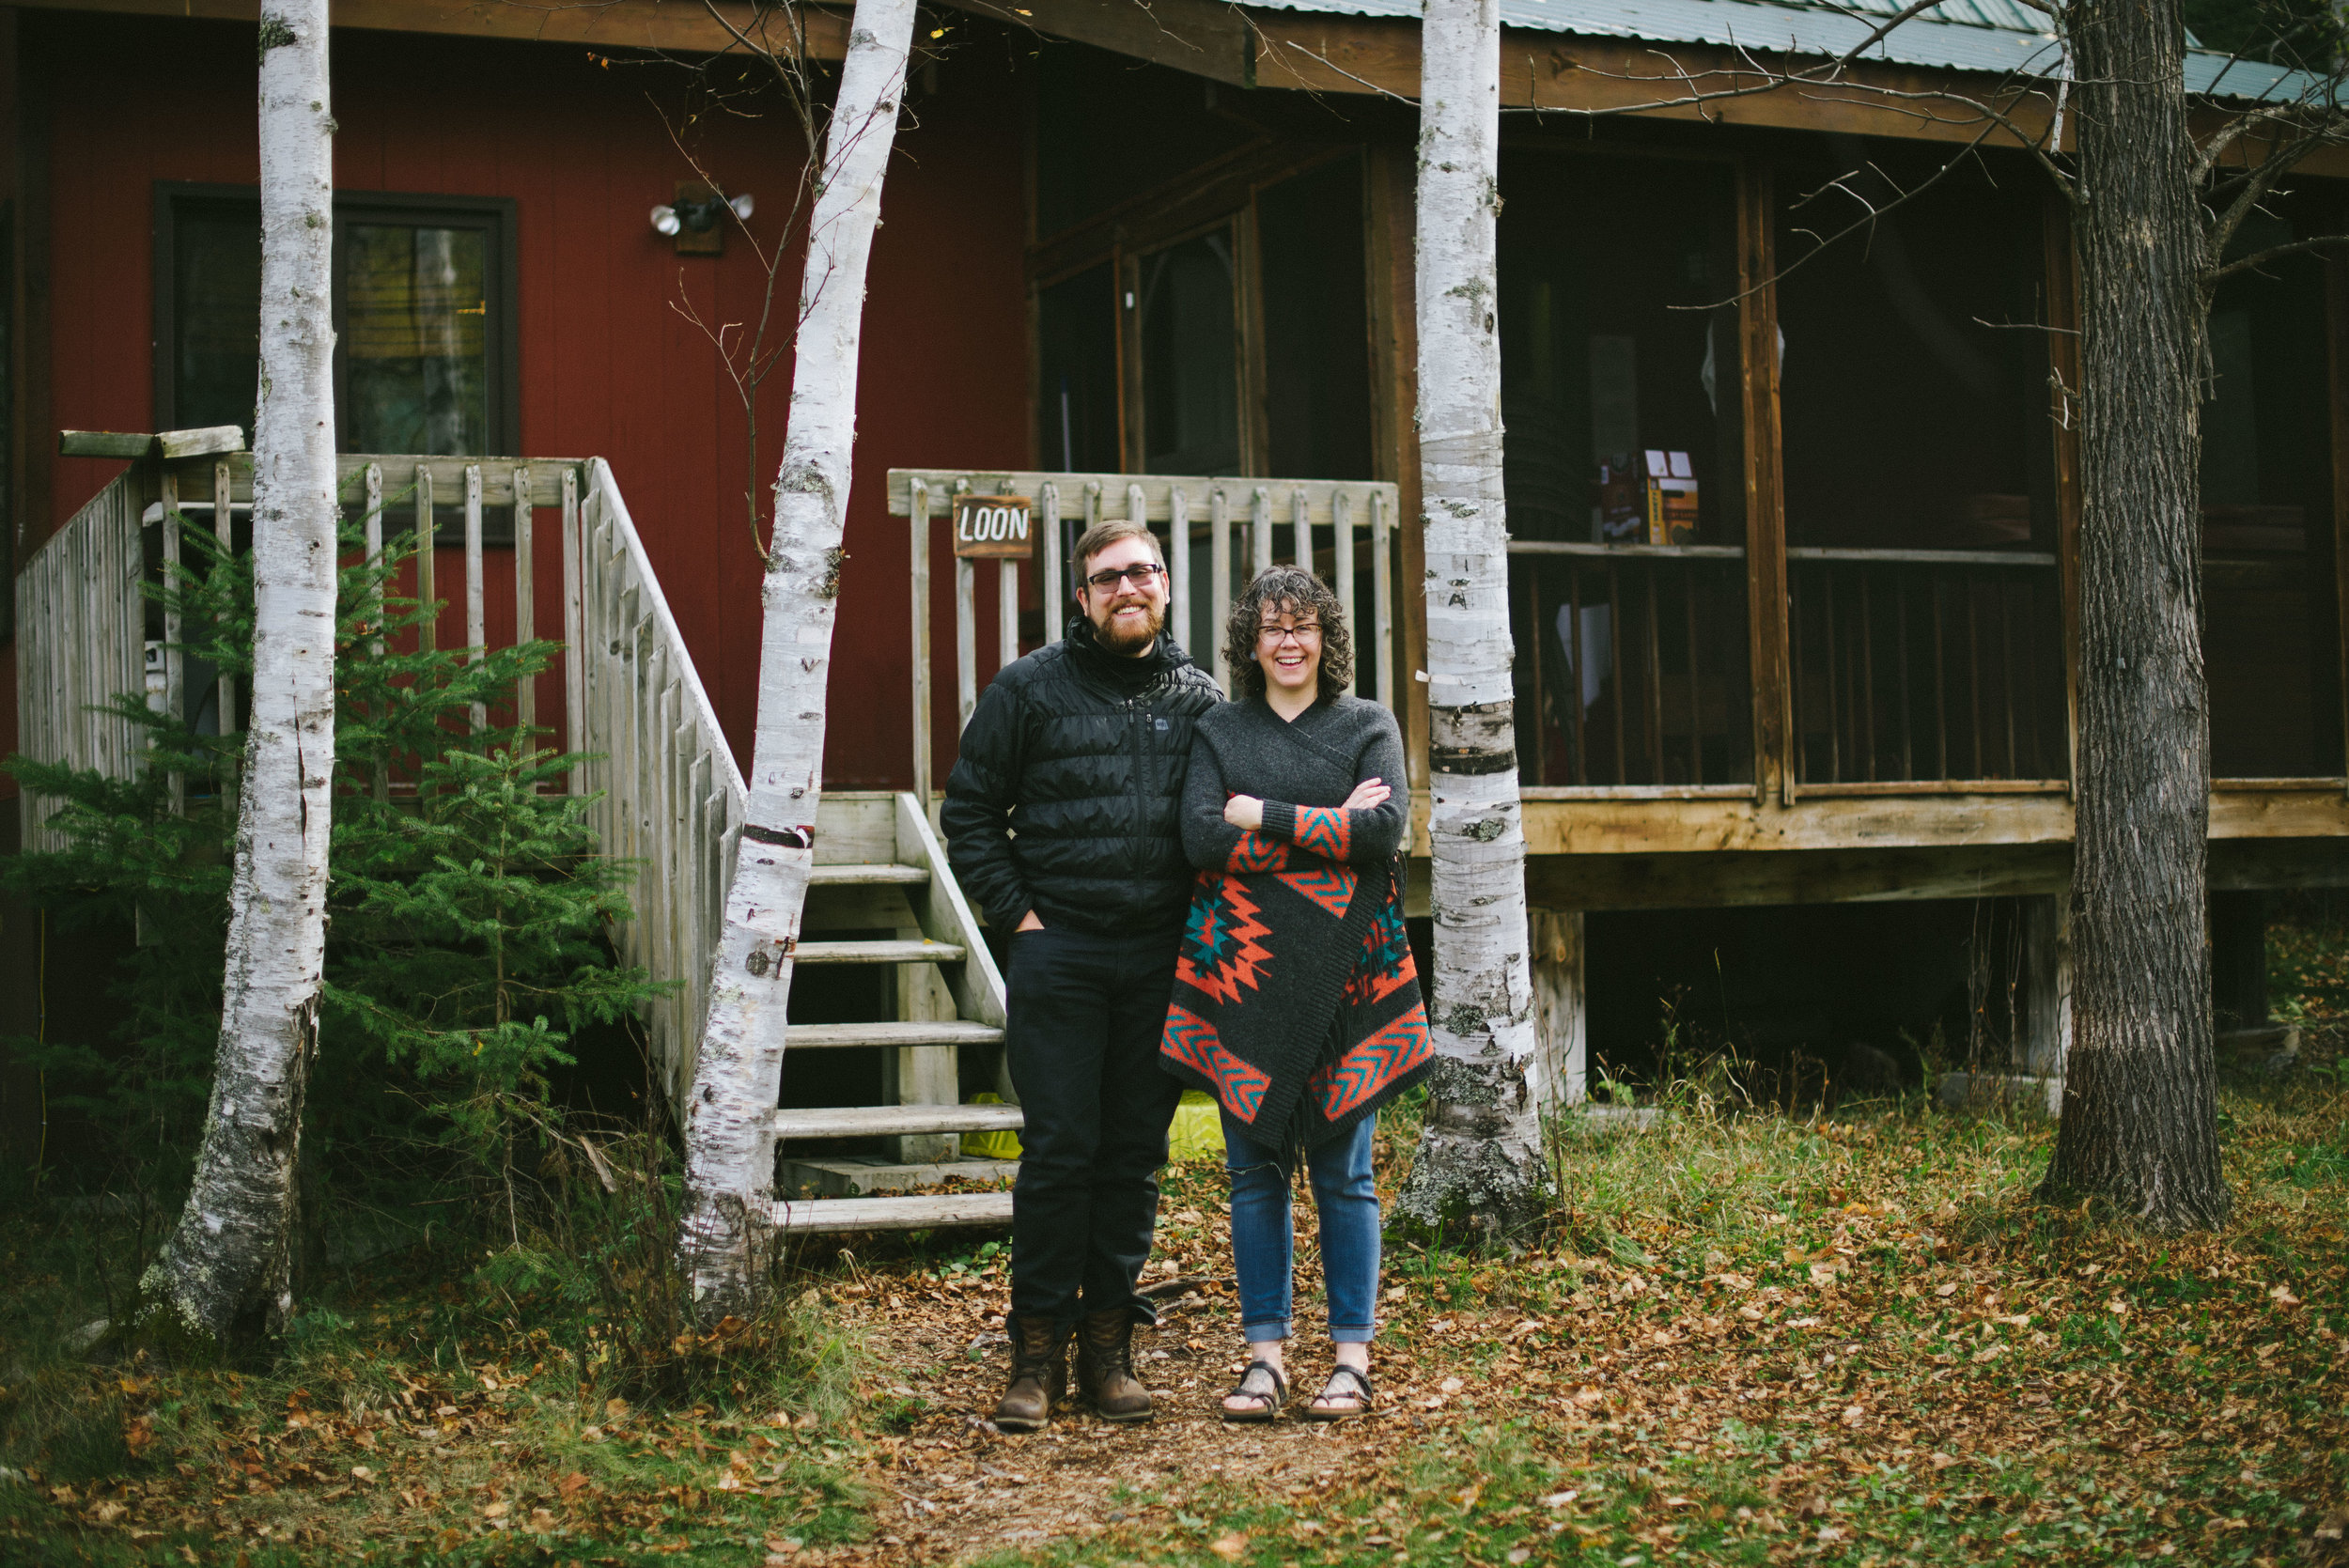 Justina and her husband Jason called the Loon cabin home during her residency.